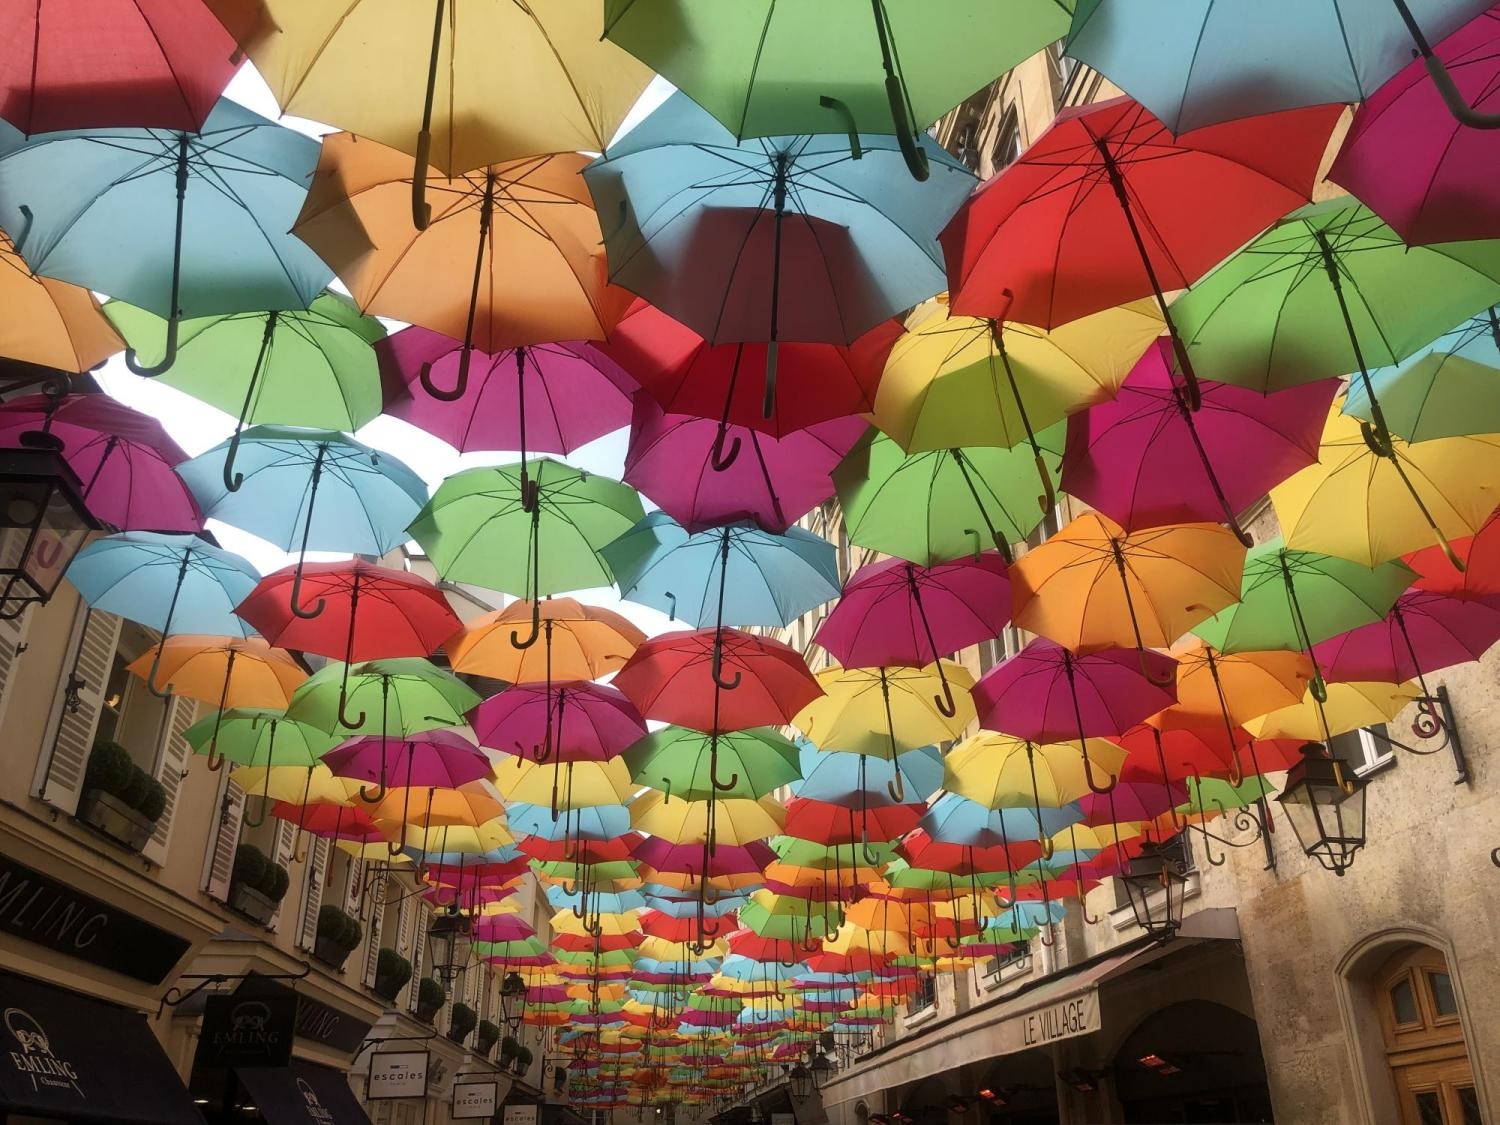 Colorful umbrellas cover a Paris street